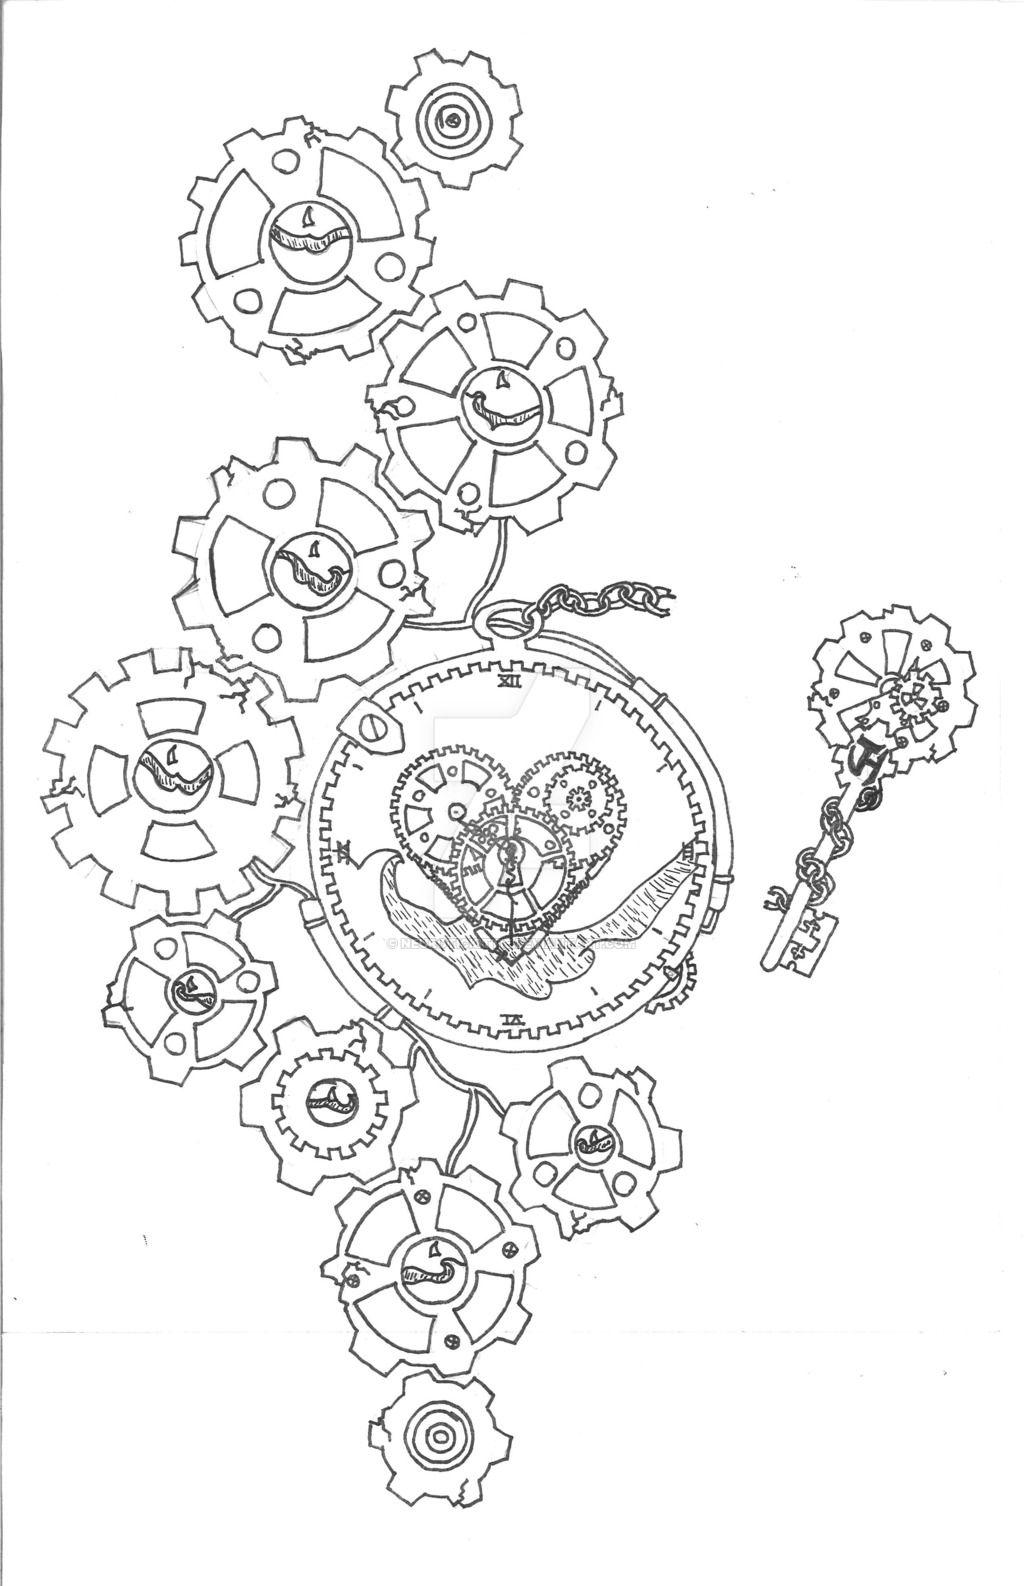 clock gear drawings and coloring pages auto electrical wiring diagramPatent Us8452905 Serial Port Remote Control Circuit Google Patents #17